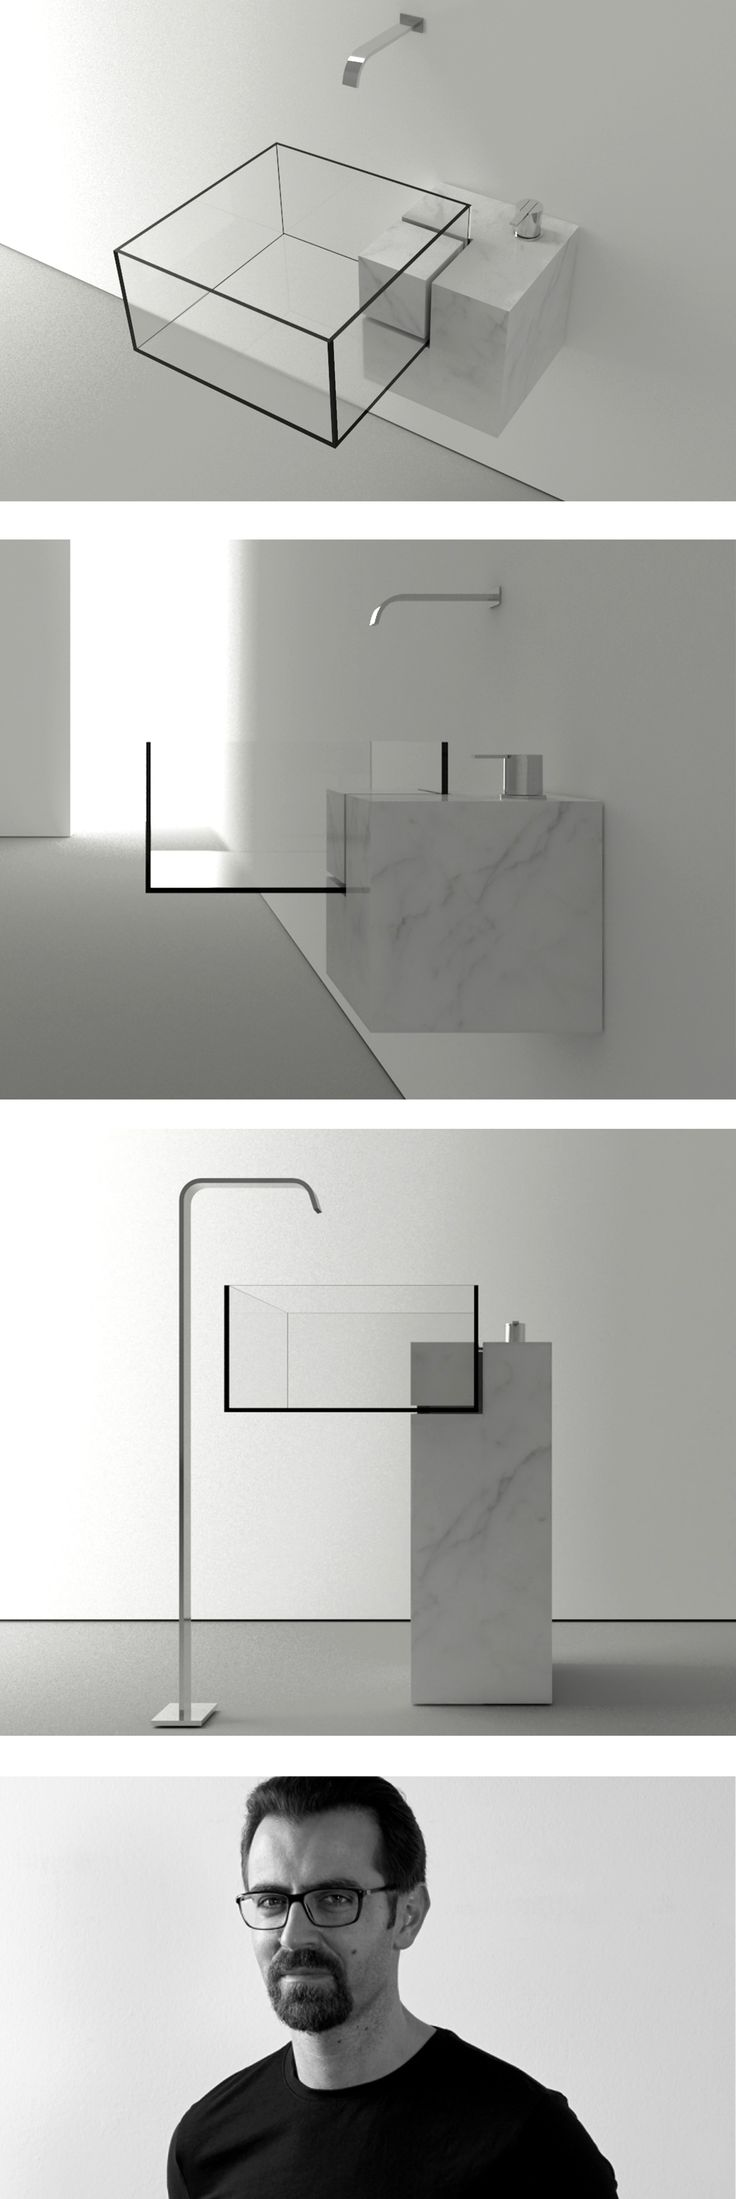 Milan-based architect #VictorVasilev designed KUB, a nearly invisible bathroom… Me gusta la innovación